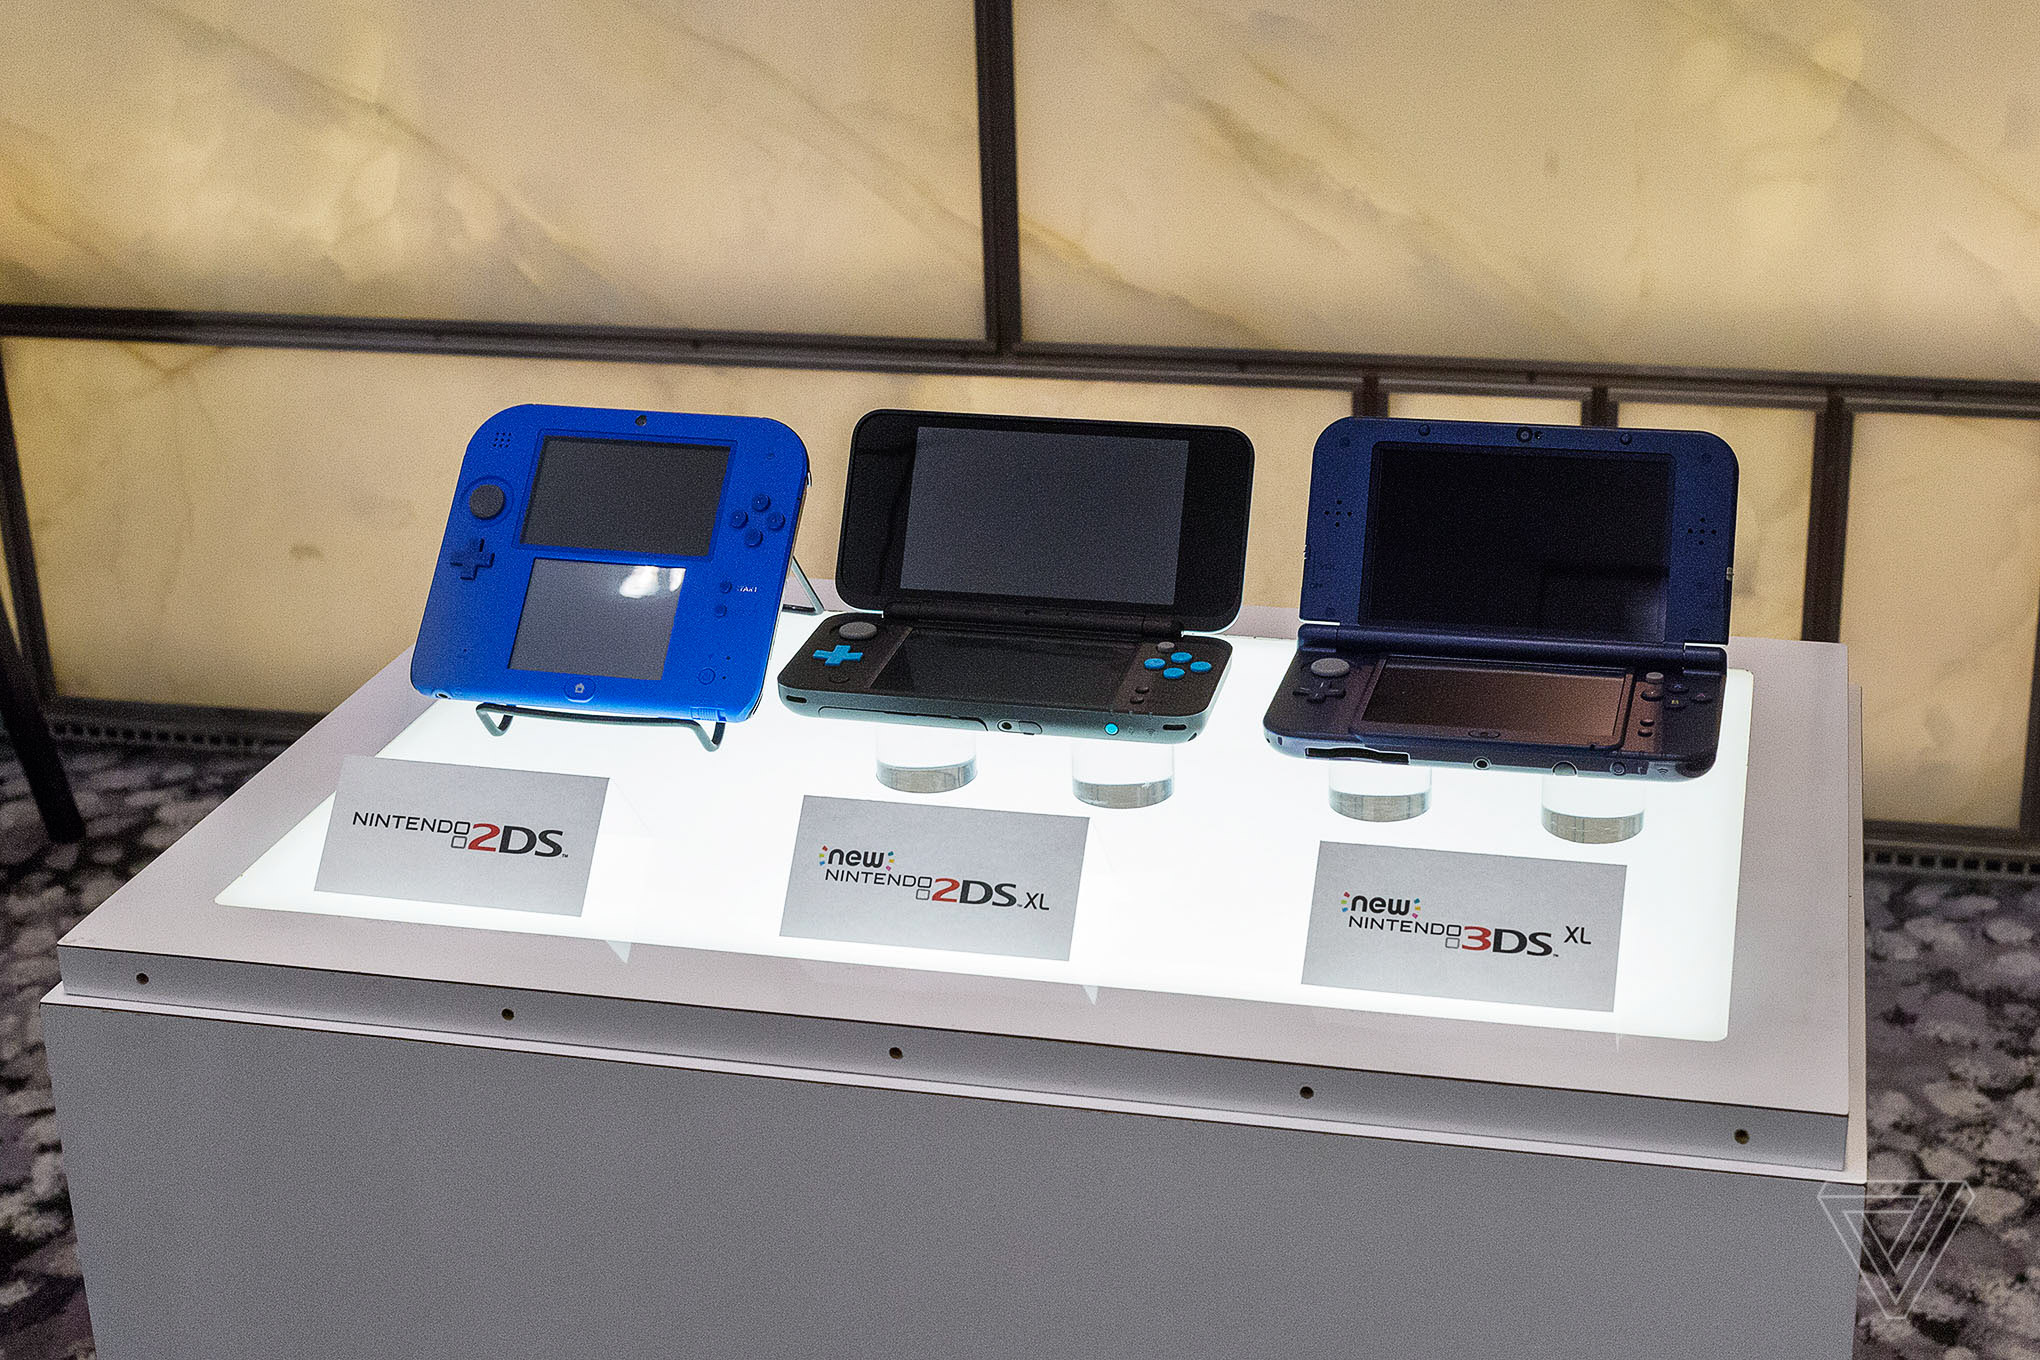 3d Gaming Has Failed To Catch On So The 2ds Will Be, For Many, An  Improved Version Of The Product At A Lower Cost This May Mark The End Of  Nintendo's